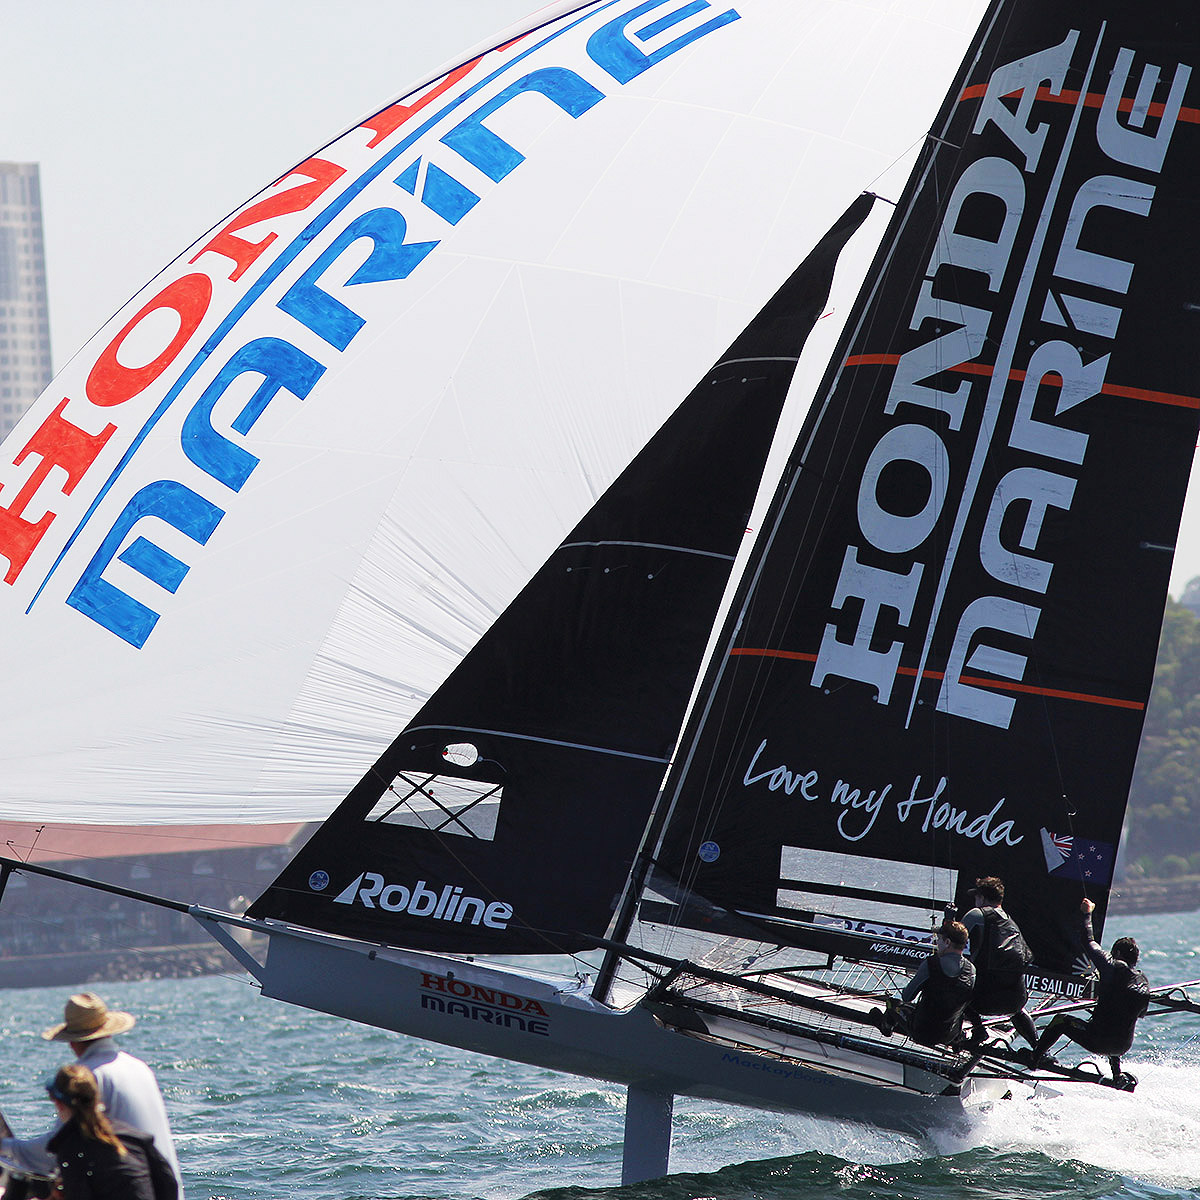 Defending champion Honda Marine team finished second in Race 3.